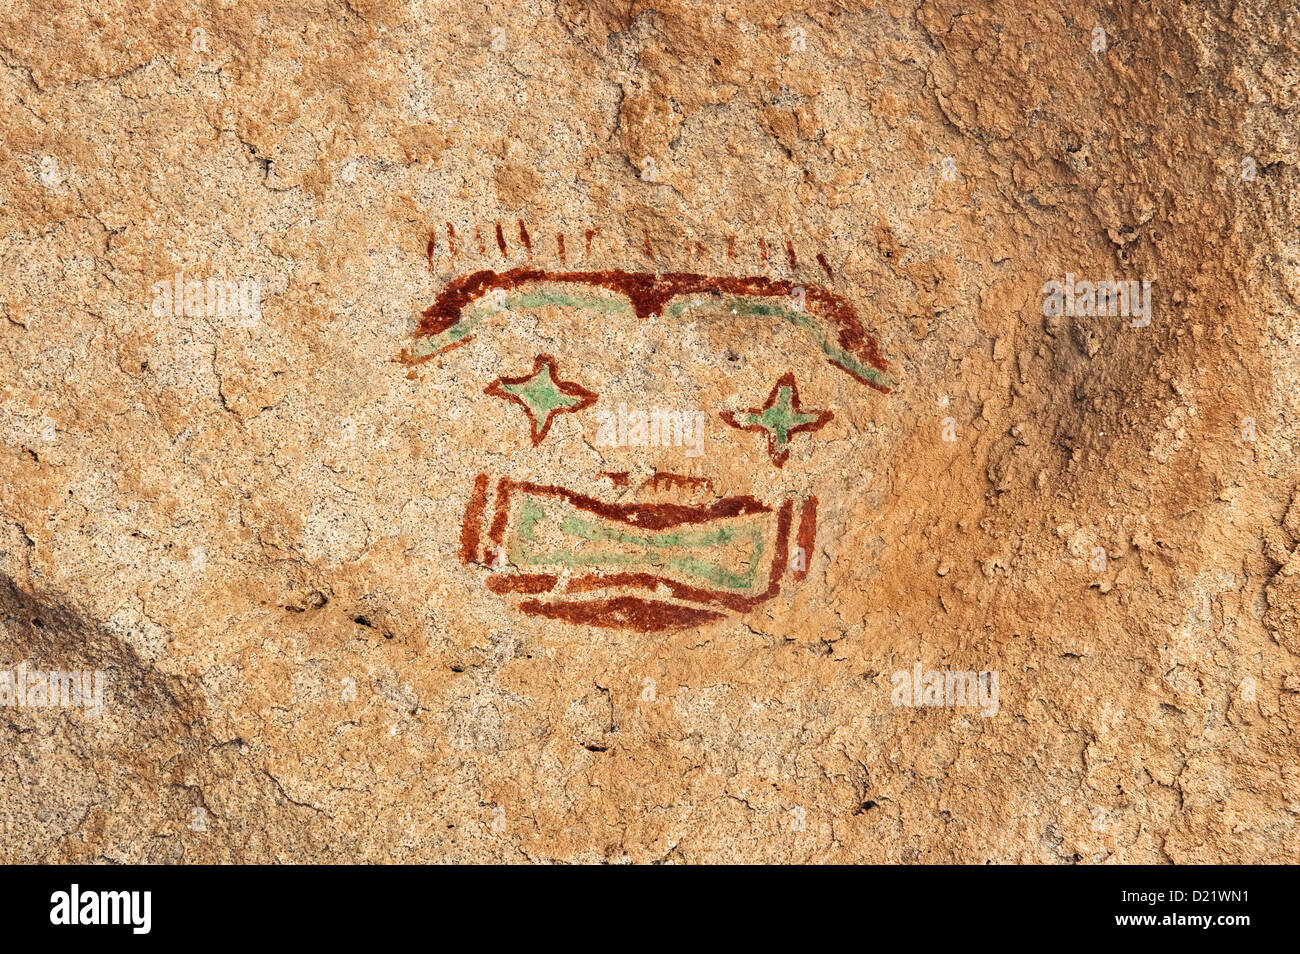 Starry-Eyed Man, red-and-green mask pictograph, by Jornada Mogollon peoples, Hueco Tanks State Park and Historic - Stock Image